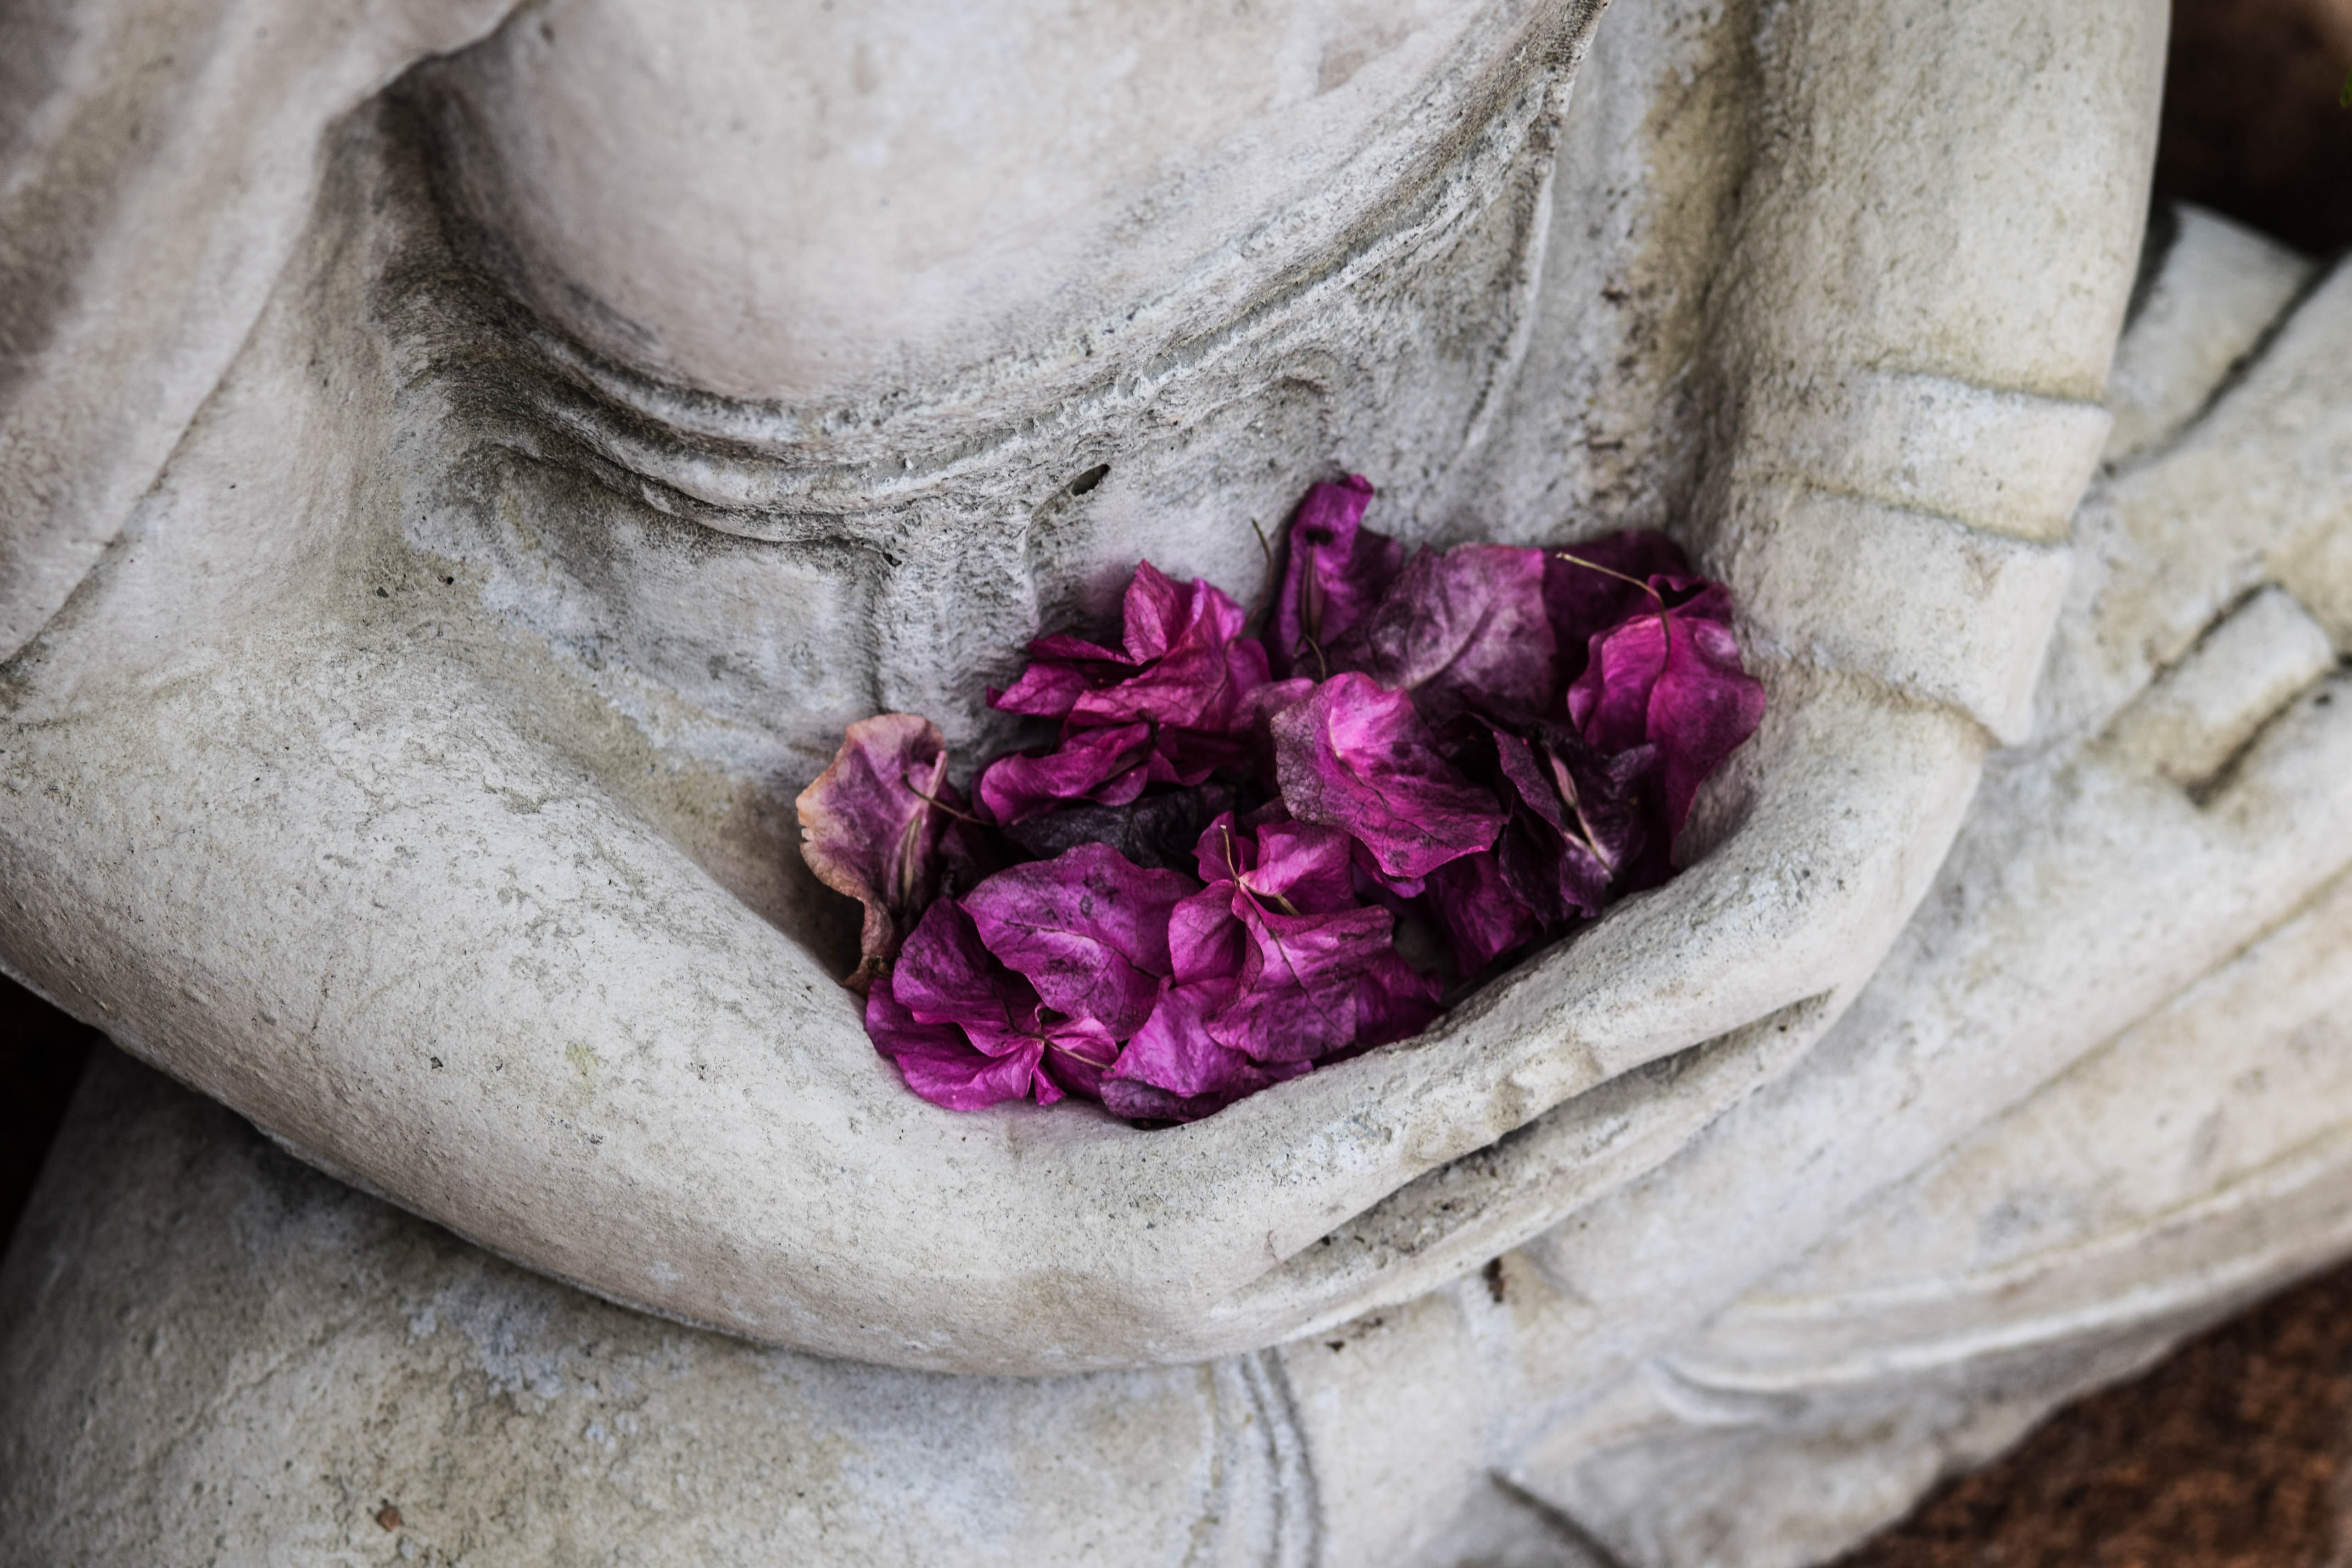 A bunch of purple flowers in the hands of a statue of a person sitting cross-legged